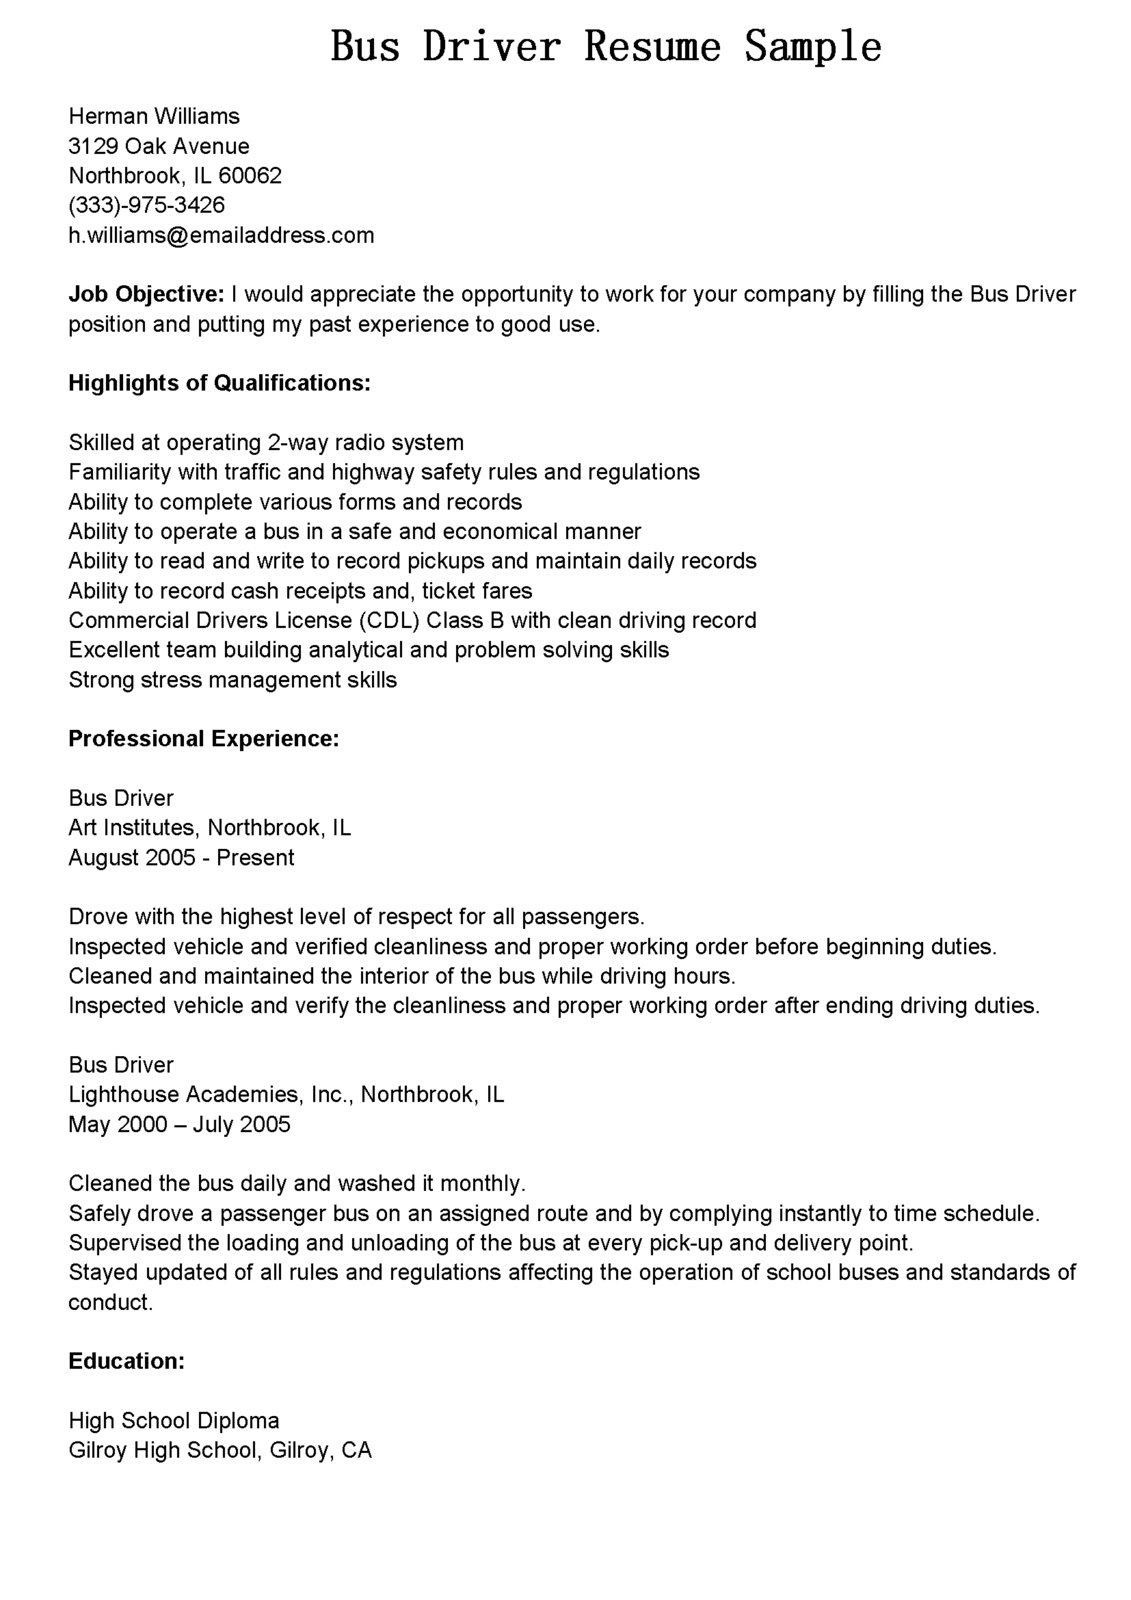 truck driver resume sample truck driver resume sample and tips driver resume beautician cosmetologist resum otr - Sample Resume For Coach Driver